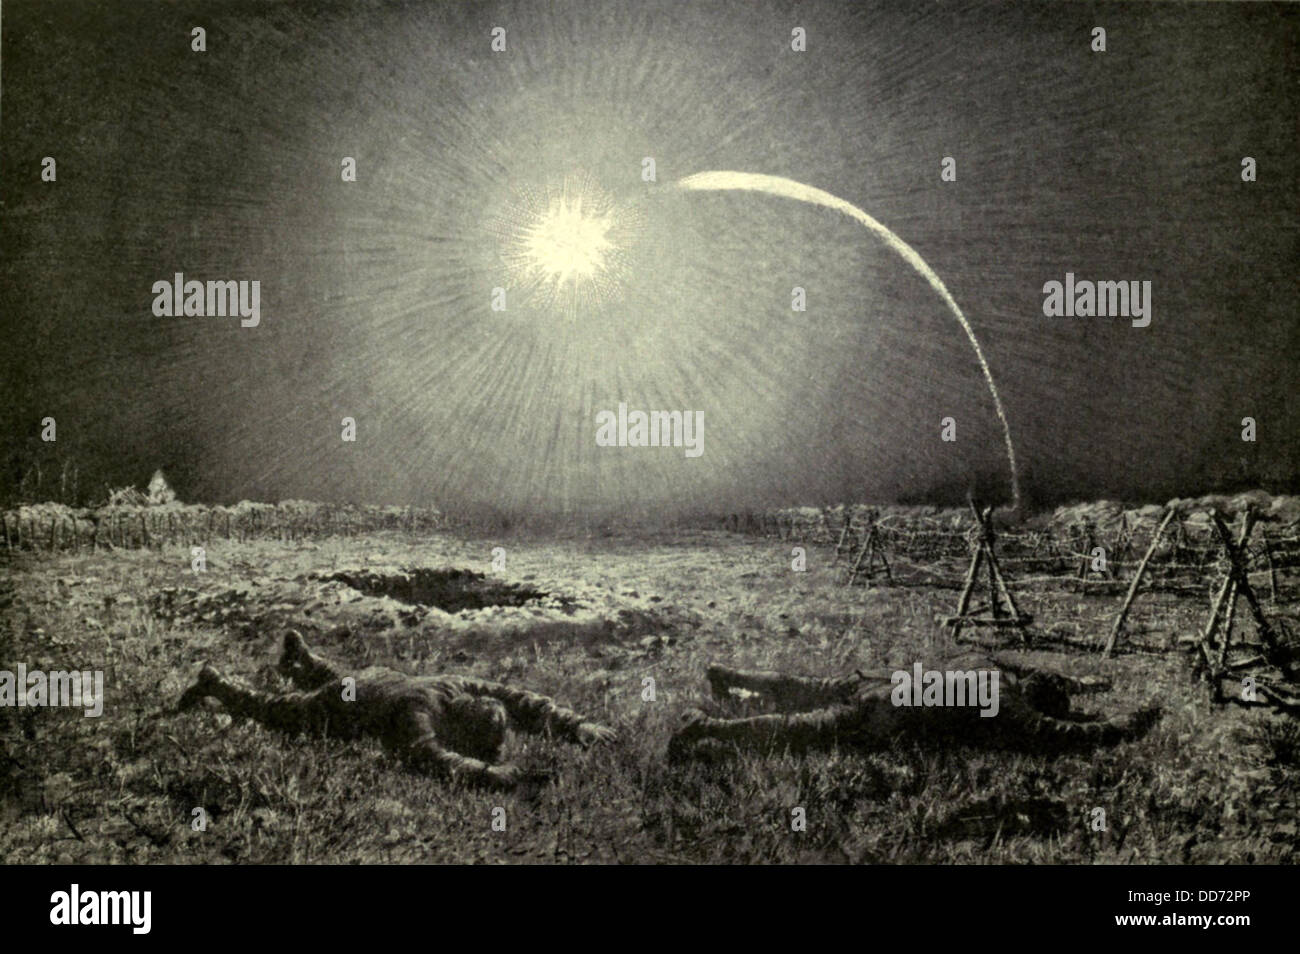 Land Trench Stock Photos Images Alamy Ww1 Trenches Diagram Pits Behind The World War 1 Both Sides Launched Flares Between At Regular Intervals To Illuminate